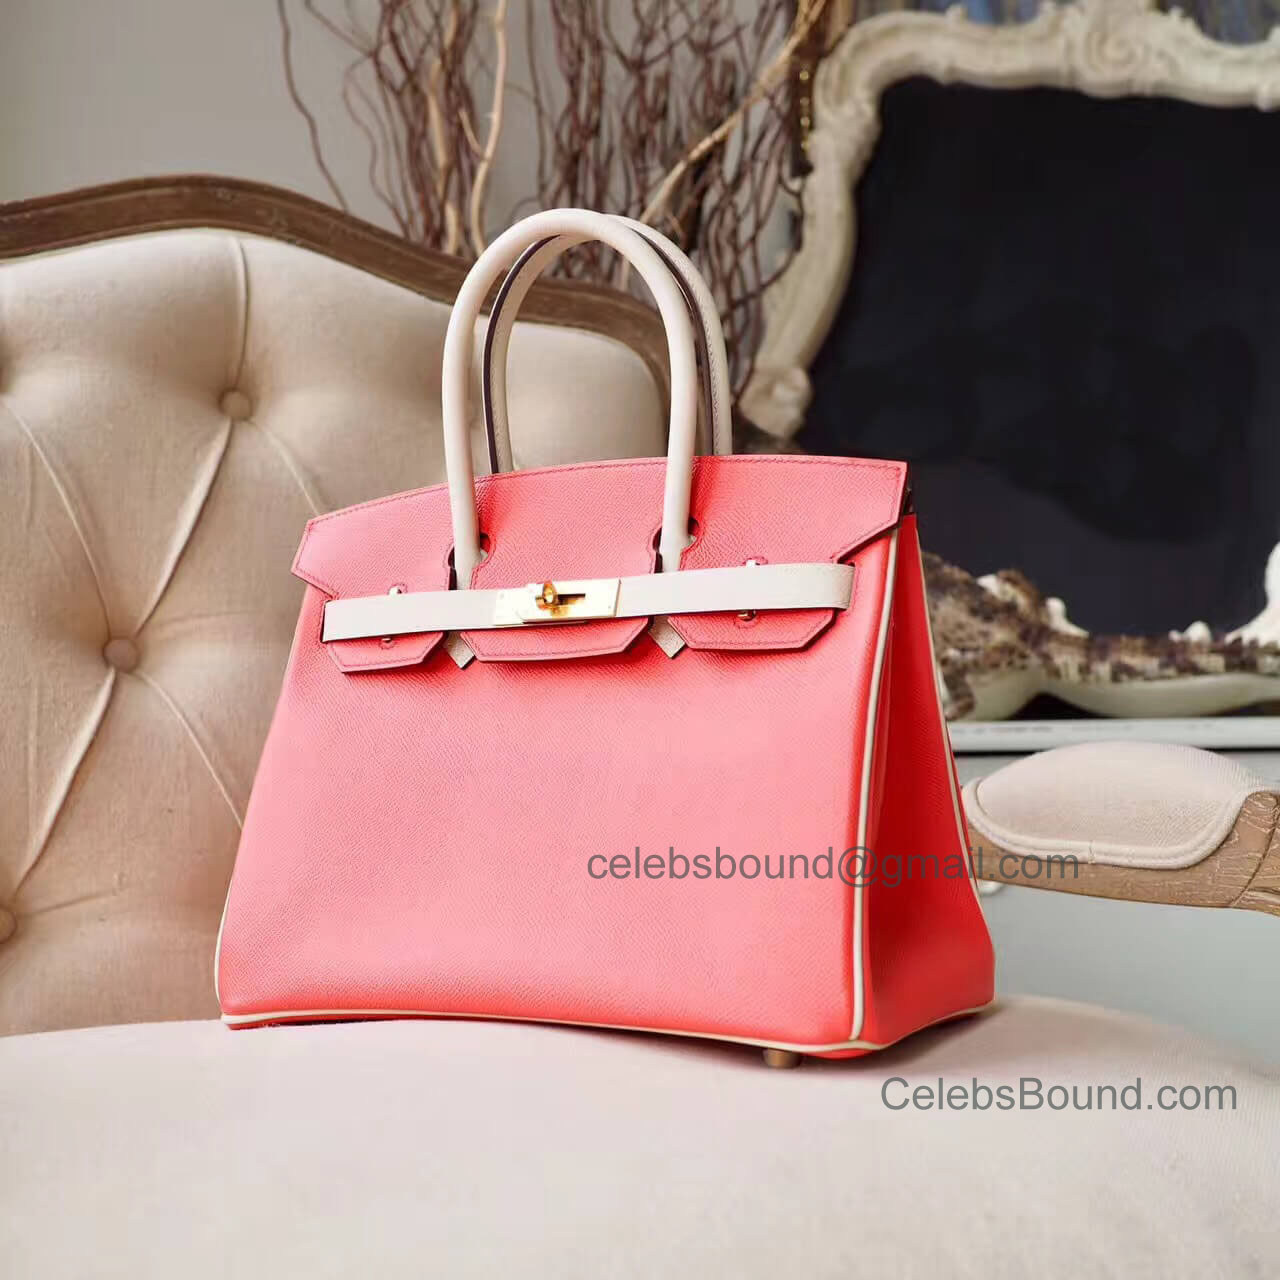 Hermes Birkin 30 Handbag in Bicolored t5 rose Jaipur Epsom GHW